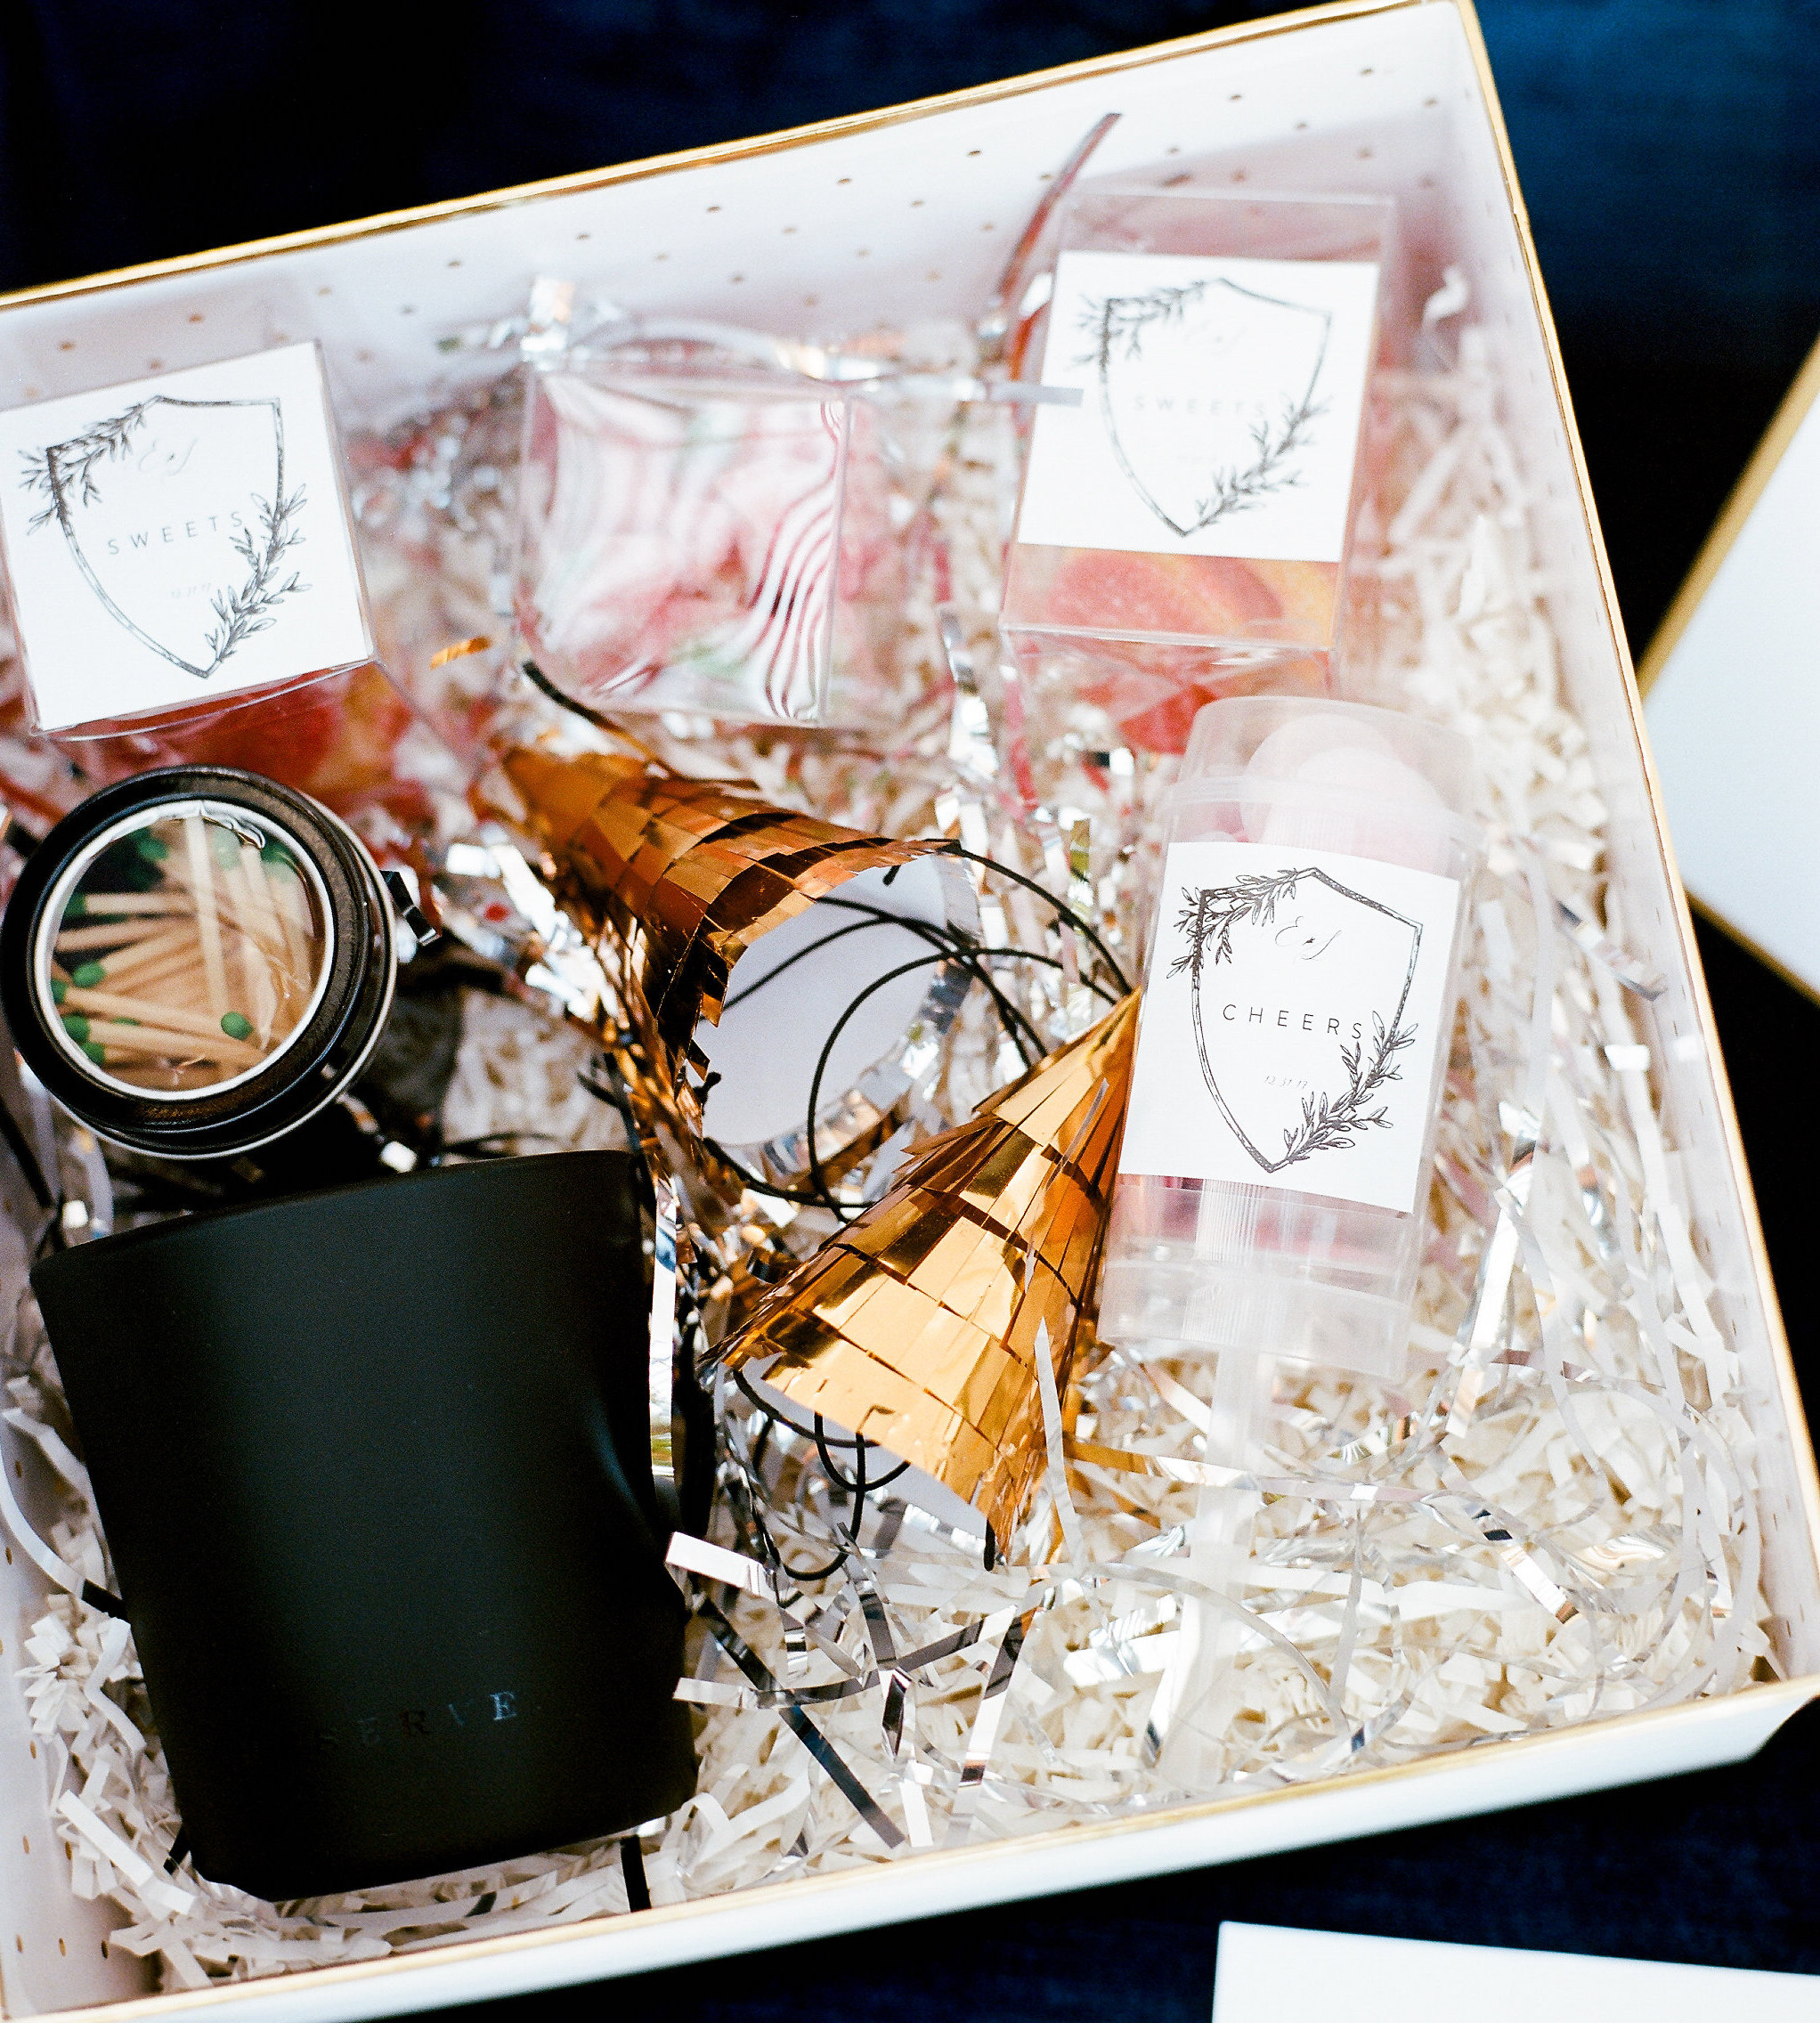 Favor Boxes - Wedding and corporate favor boxes ensure that your presentation is every bit as elegant the favors you've carefully selected for your guests! You can't go wrong with a selection of items guaranteed to please your guests.Photography: Finch Photography